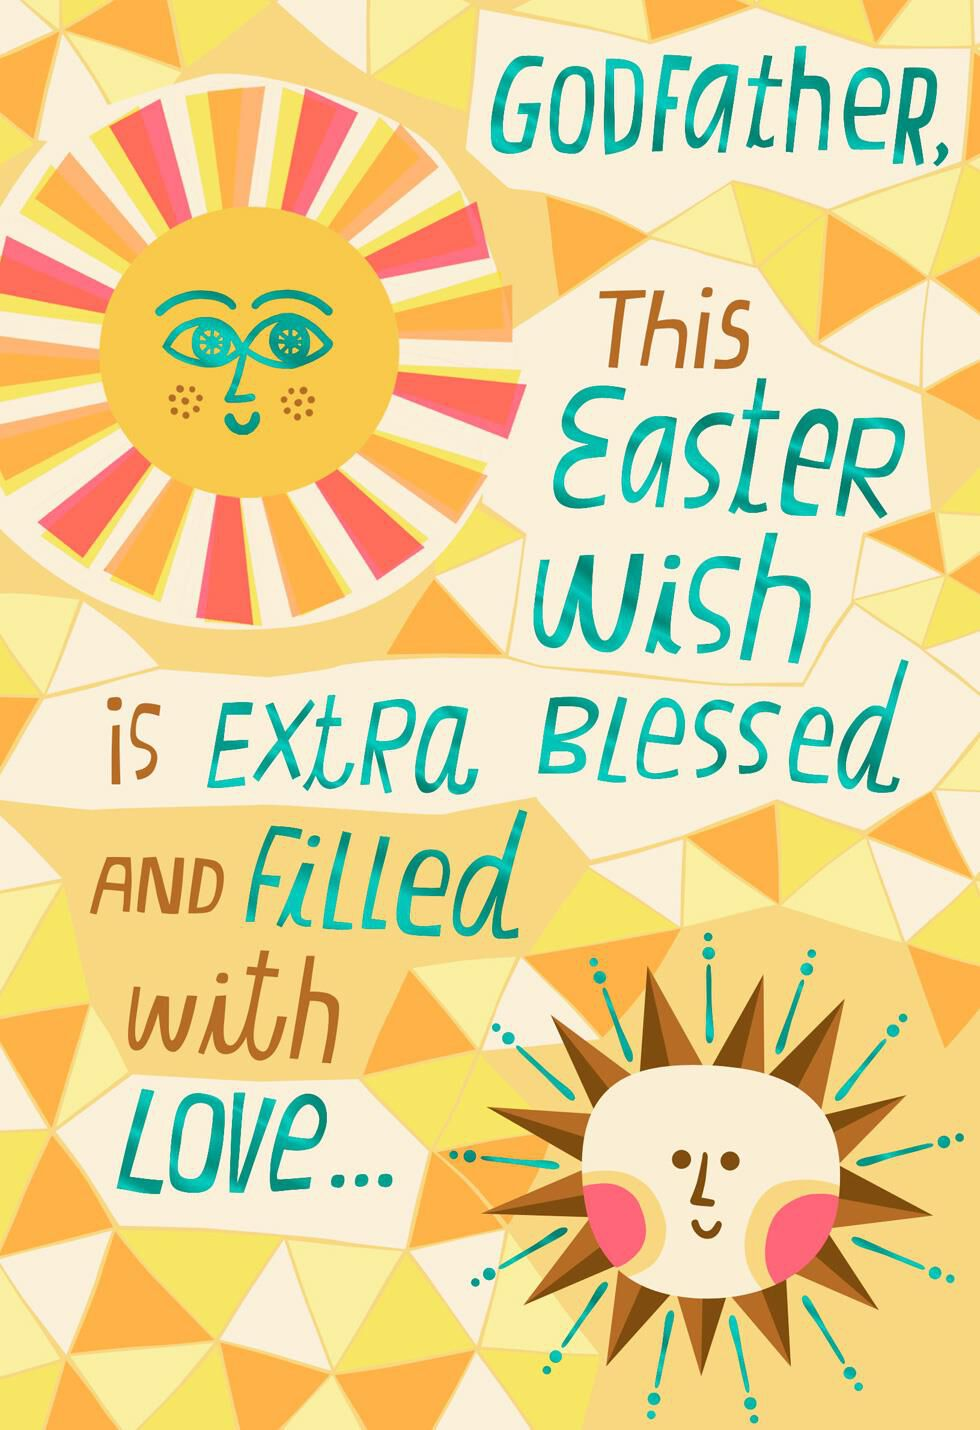 Blessings for Godfather Easter Card Greeting Cards Hallmark – Hallmark Easter Cards